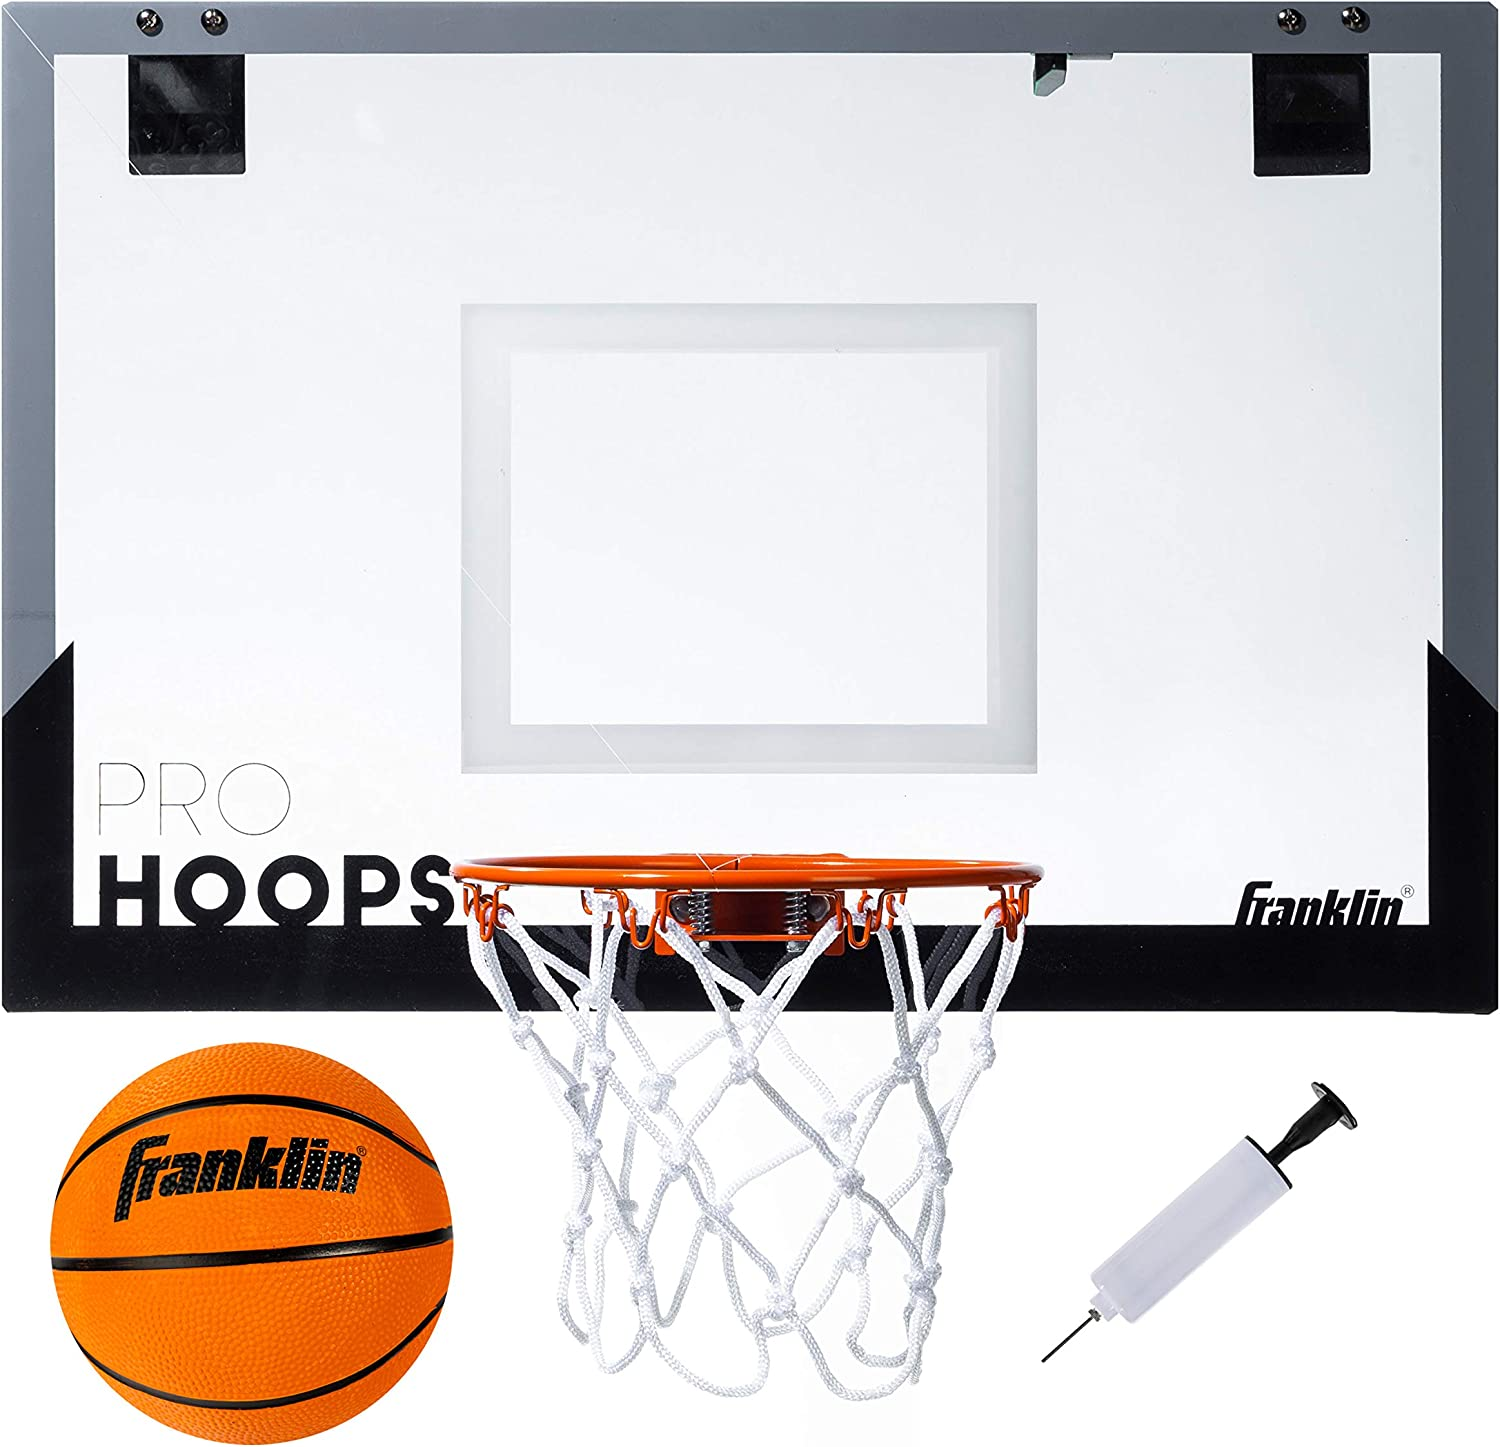 Franklin Sports Over The Door Basketball Slam Dunk Approv Daily bargain sale - Bombing new work Hoop